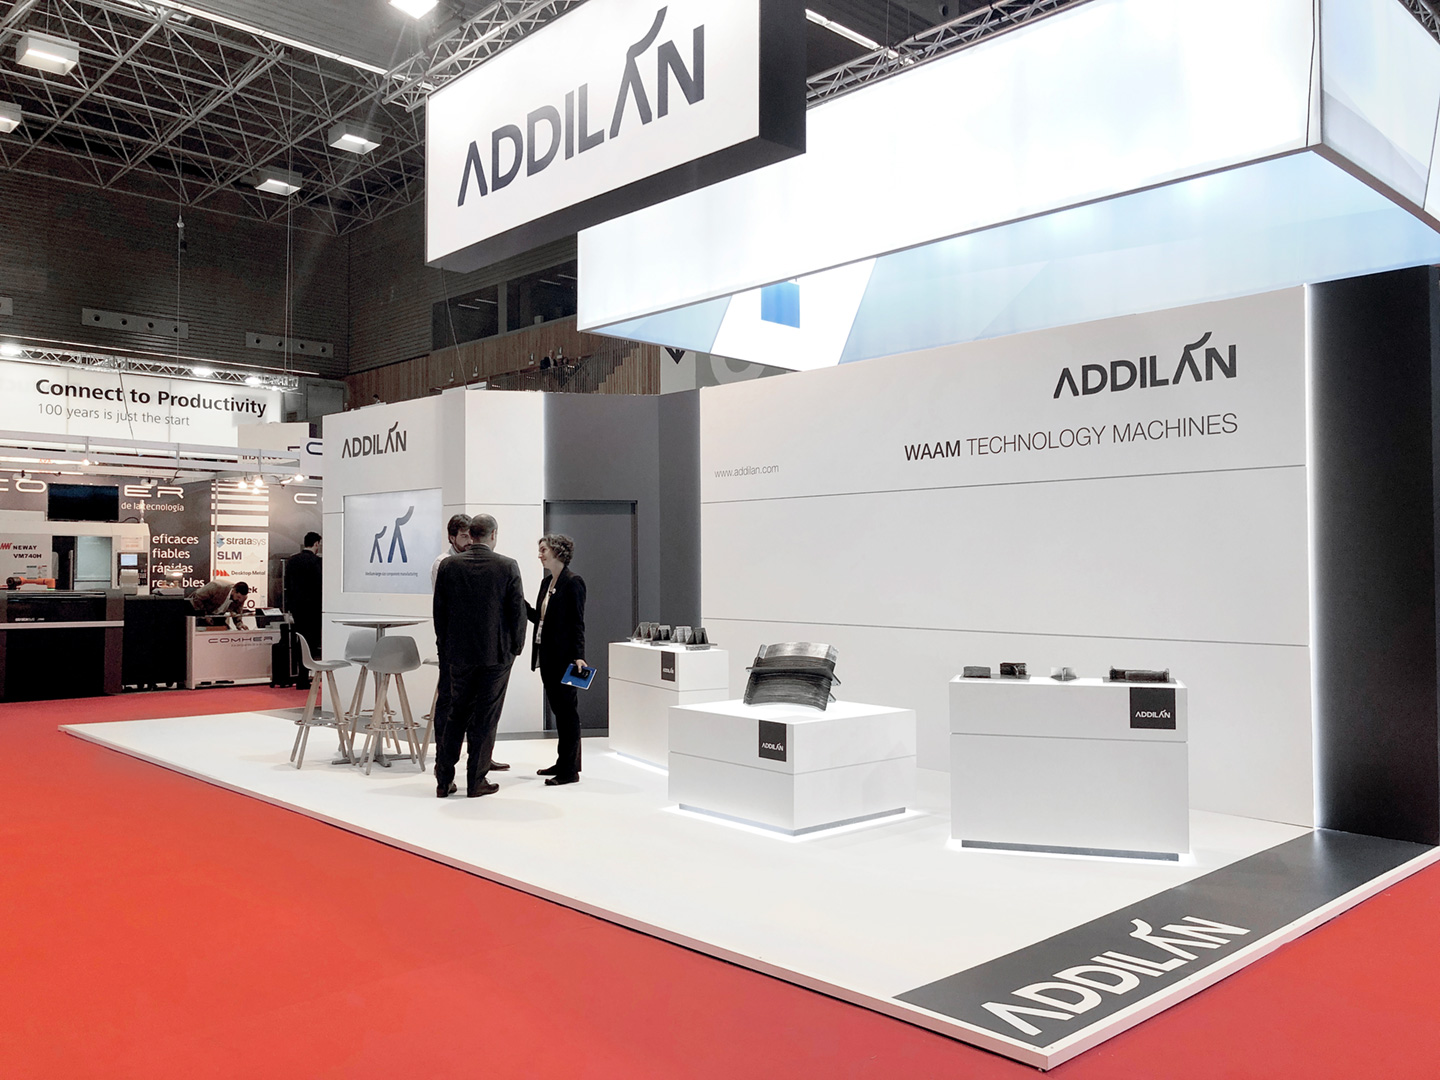 Addilan Eventos y Stands BEC plano general Feria Addit3D